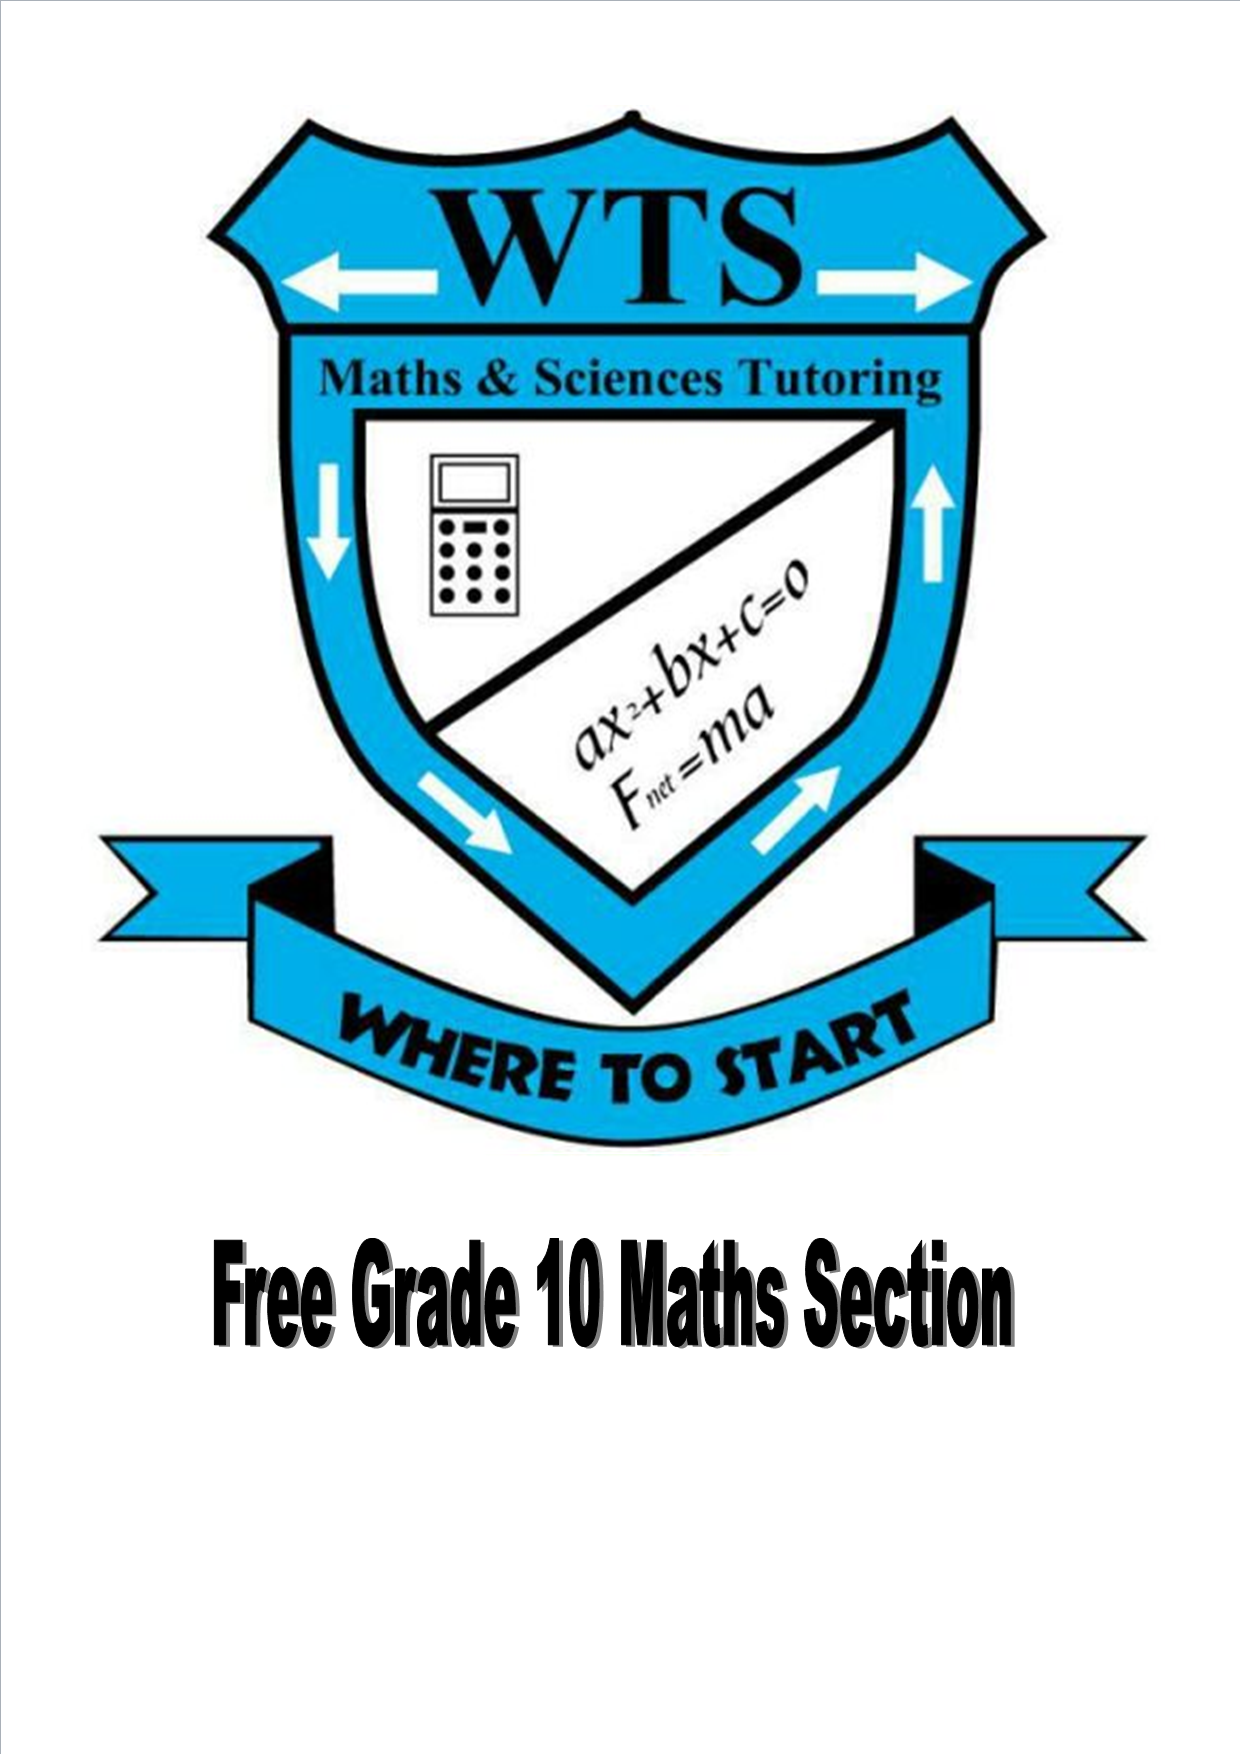 FREE GRADE 10 MATHS SECTION – Where To Start